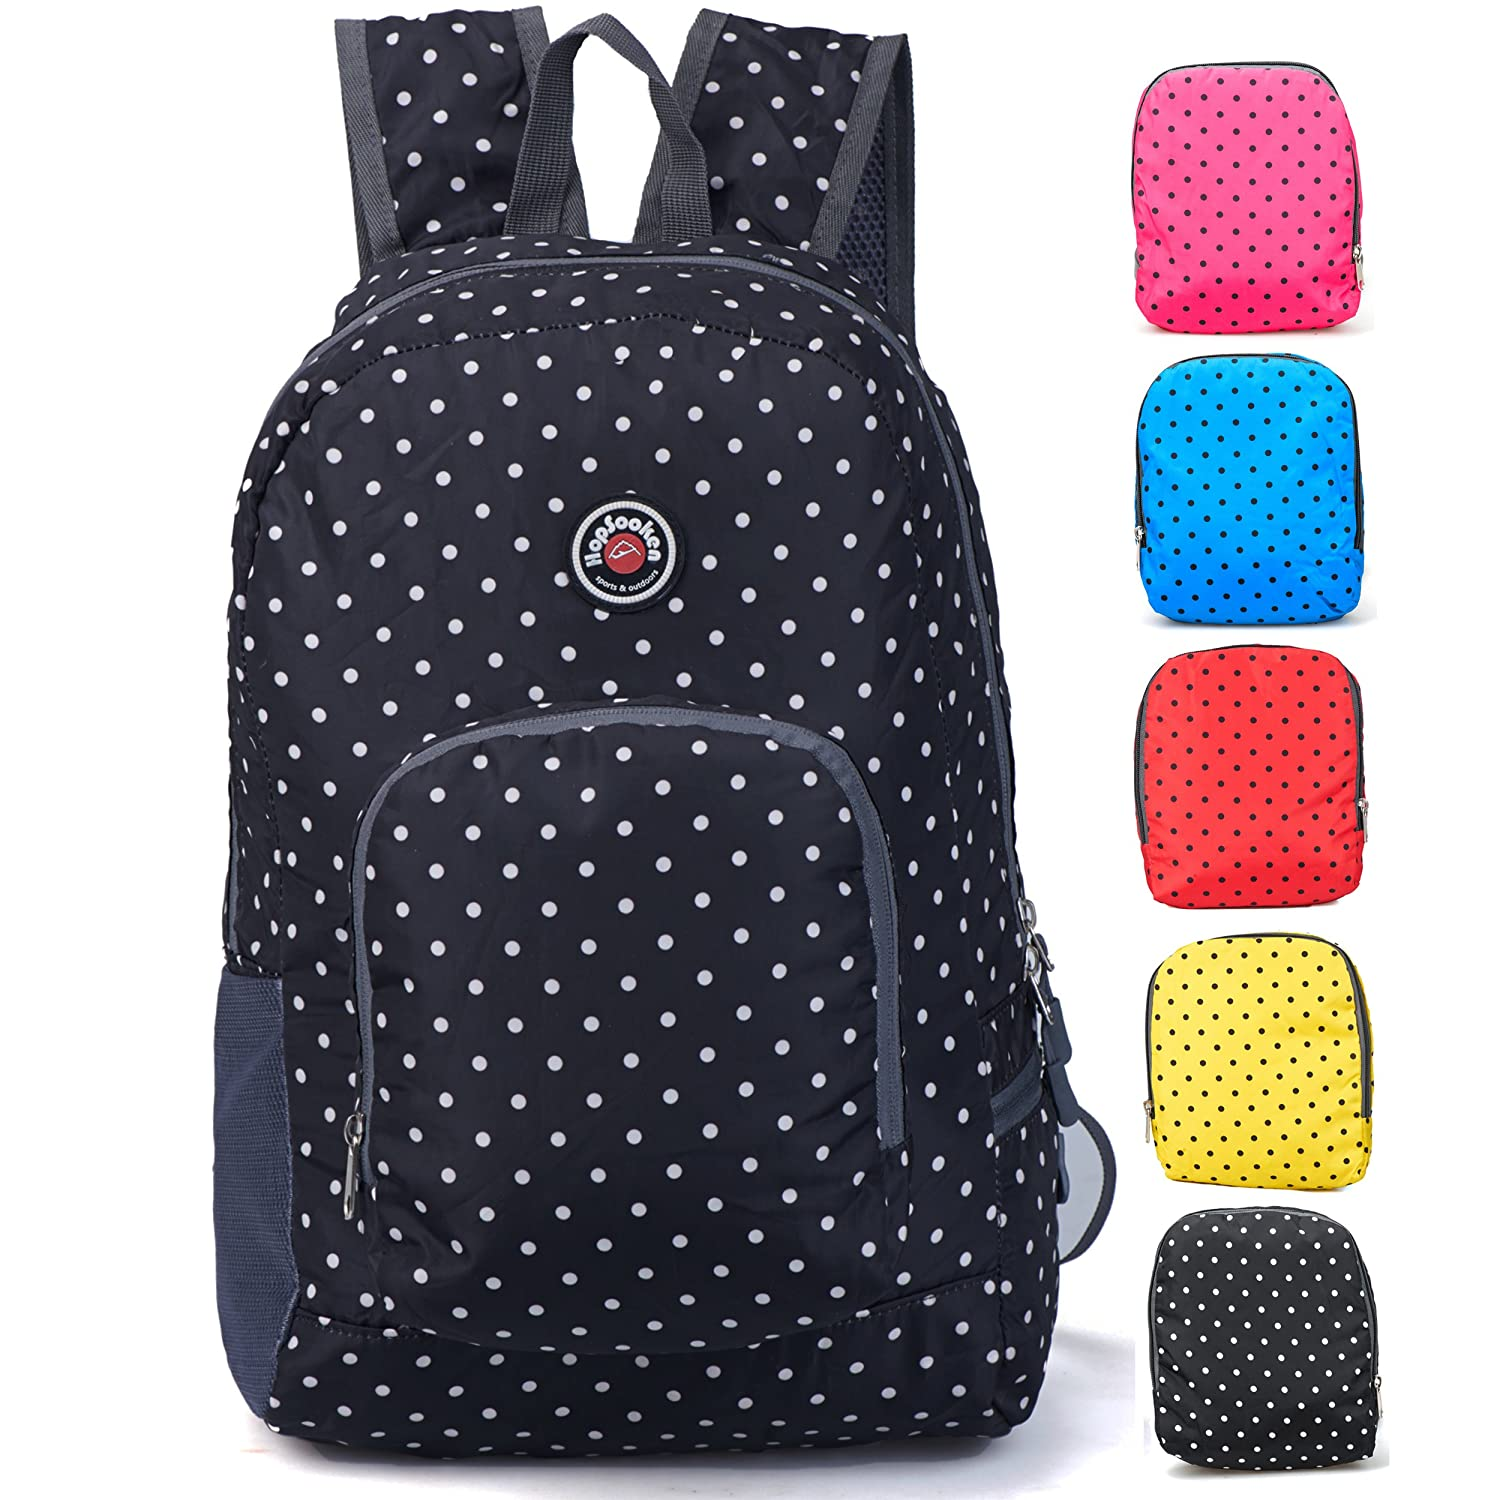 Travel Backpack for Schools - 28l/22l Hopsooken Waterproof Laptop Daypack Bag for Men and Women, Ultra Lightweight School Backpack for Girls, Boys, College Student, Colorful Crossbody Bag